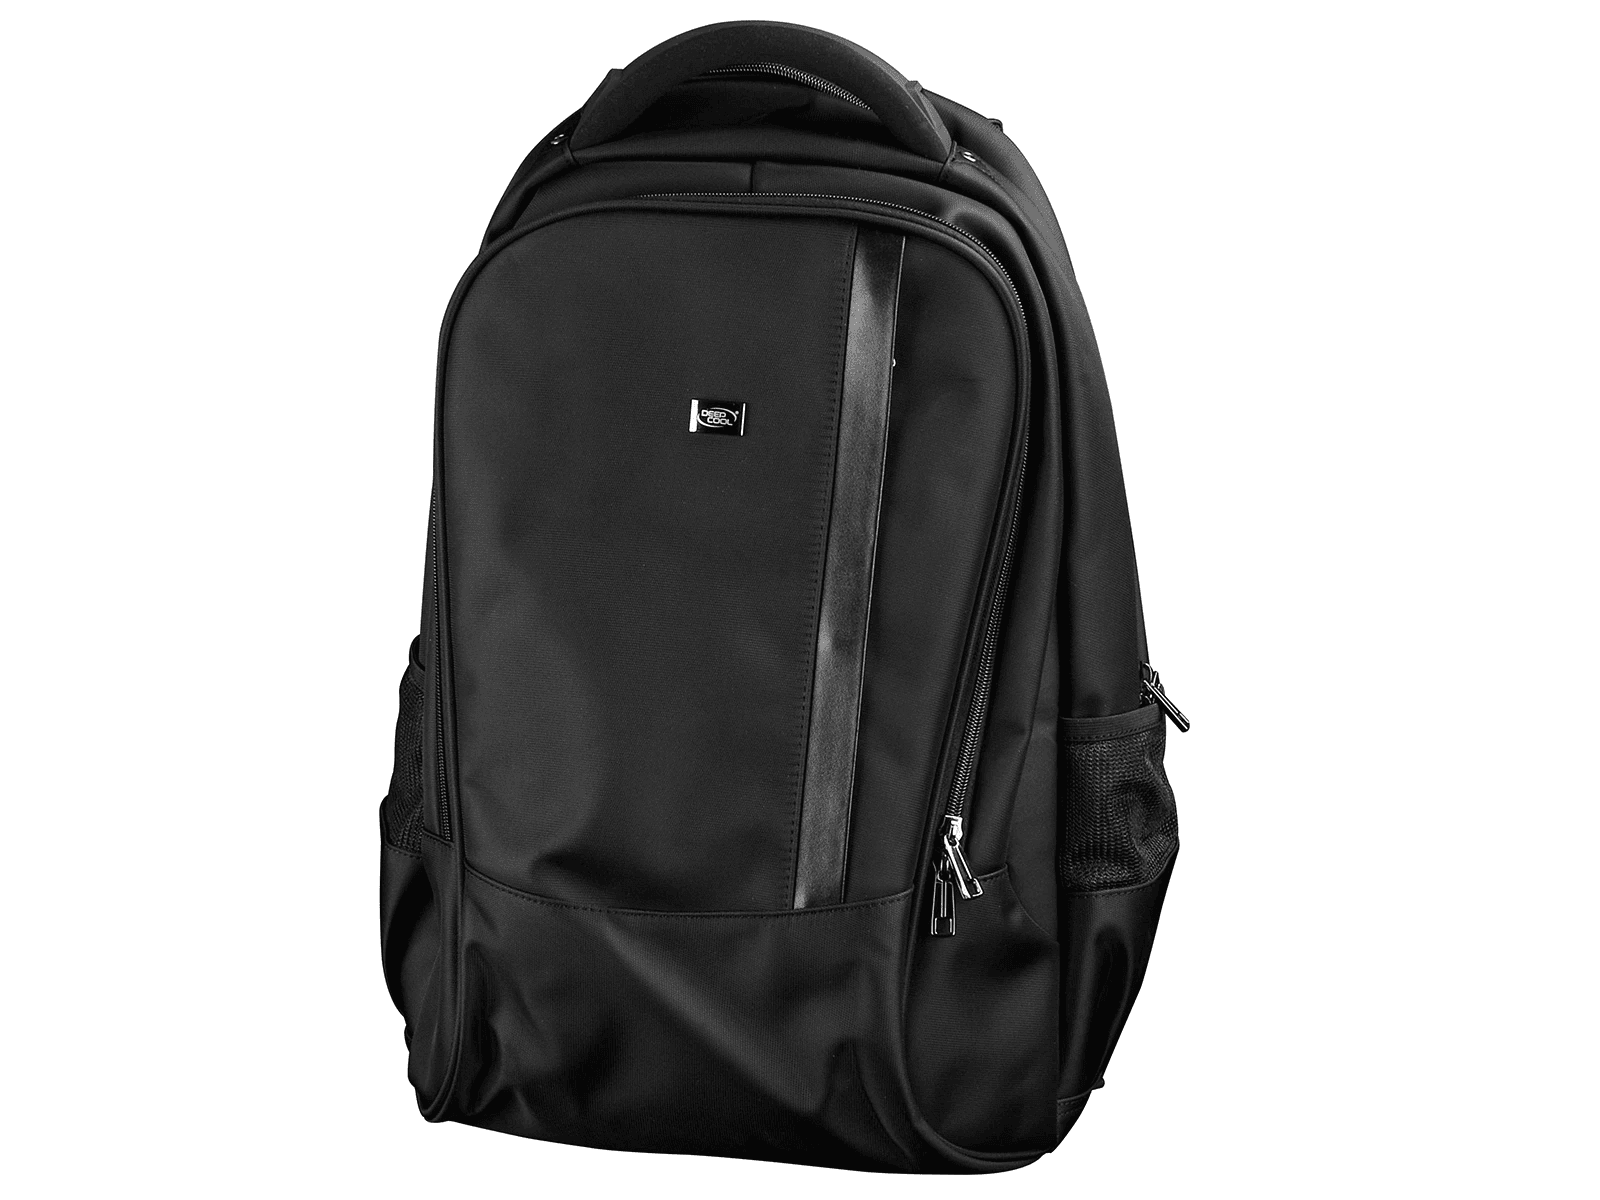 "Deepcool Backpack for 15.6  Laptops Deepcool Backpack for 15.6"" Laptops"